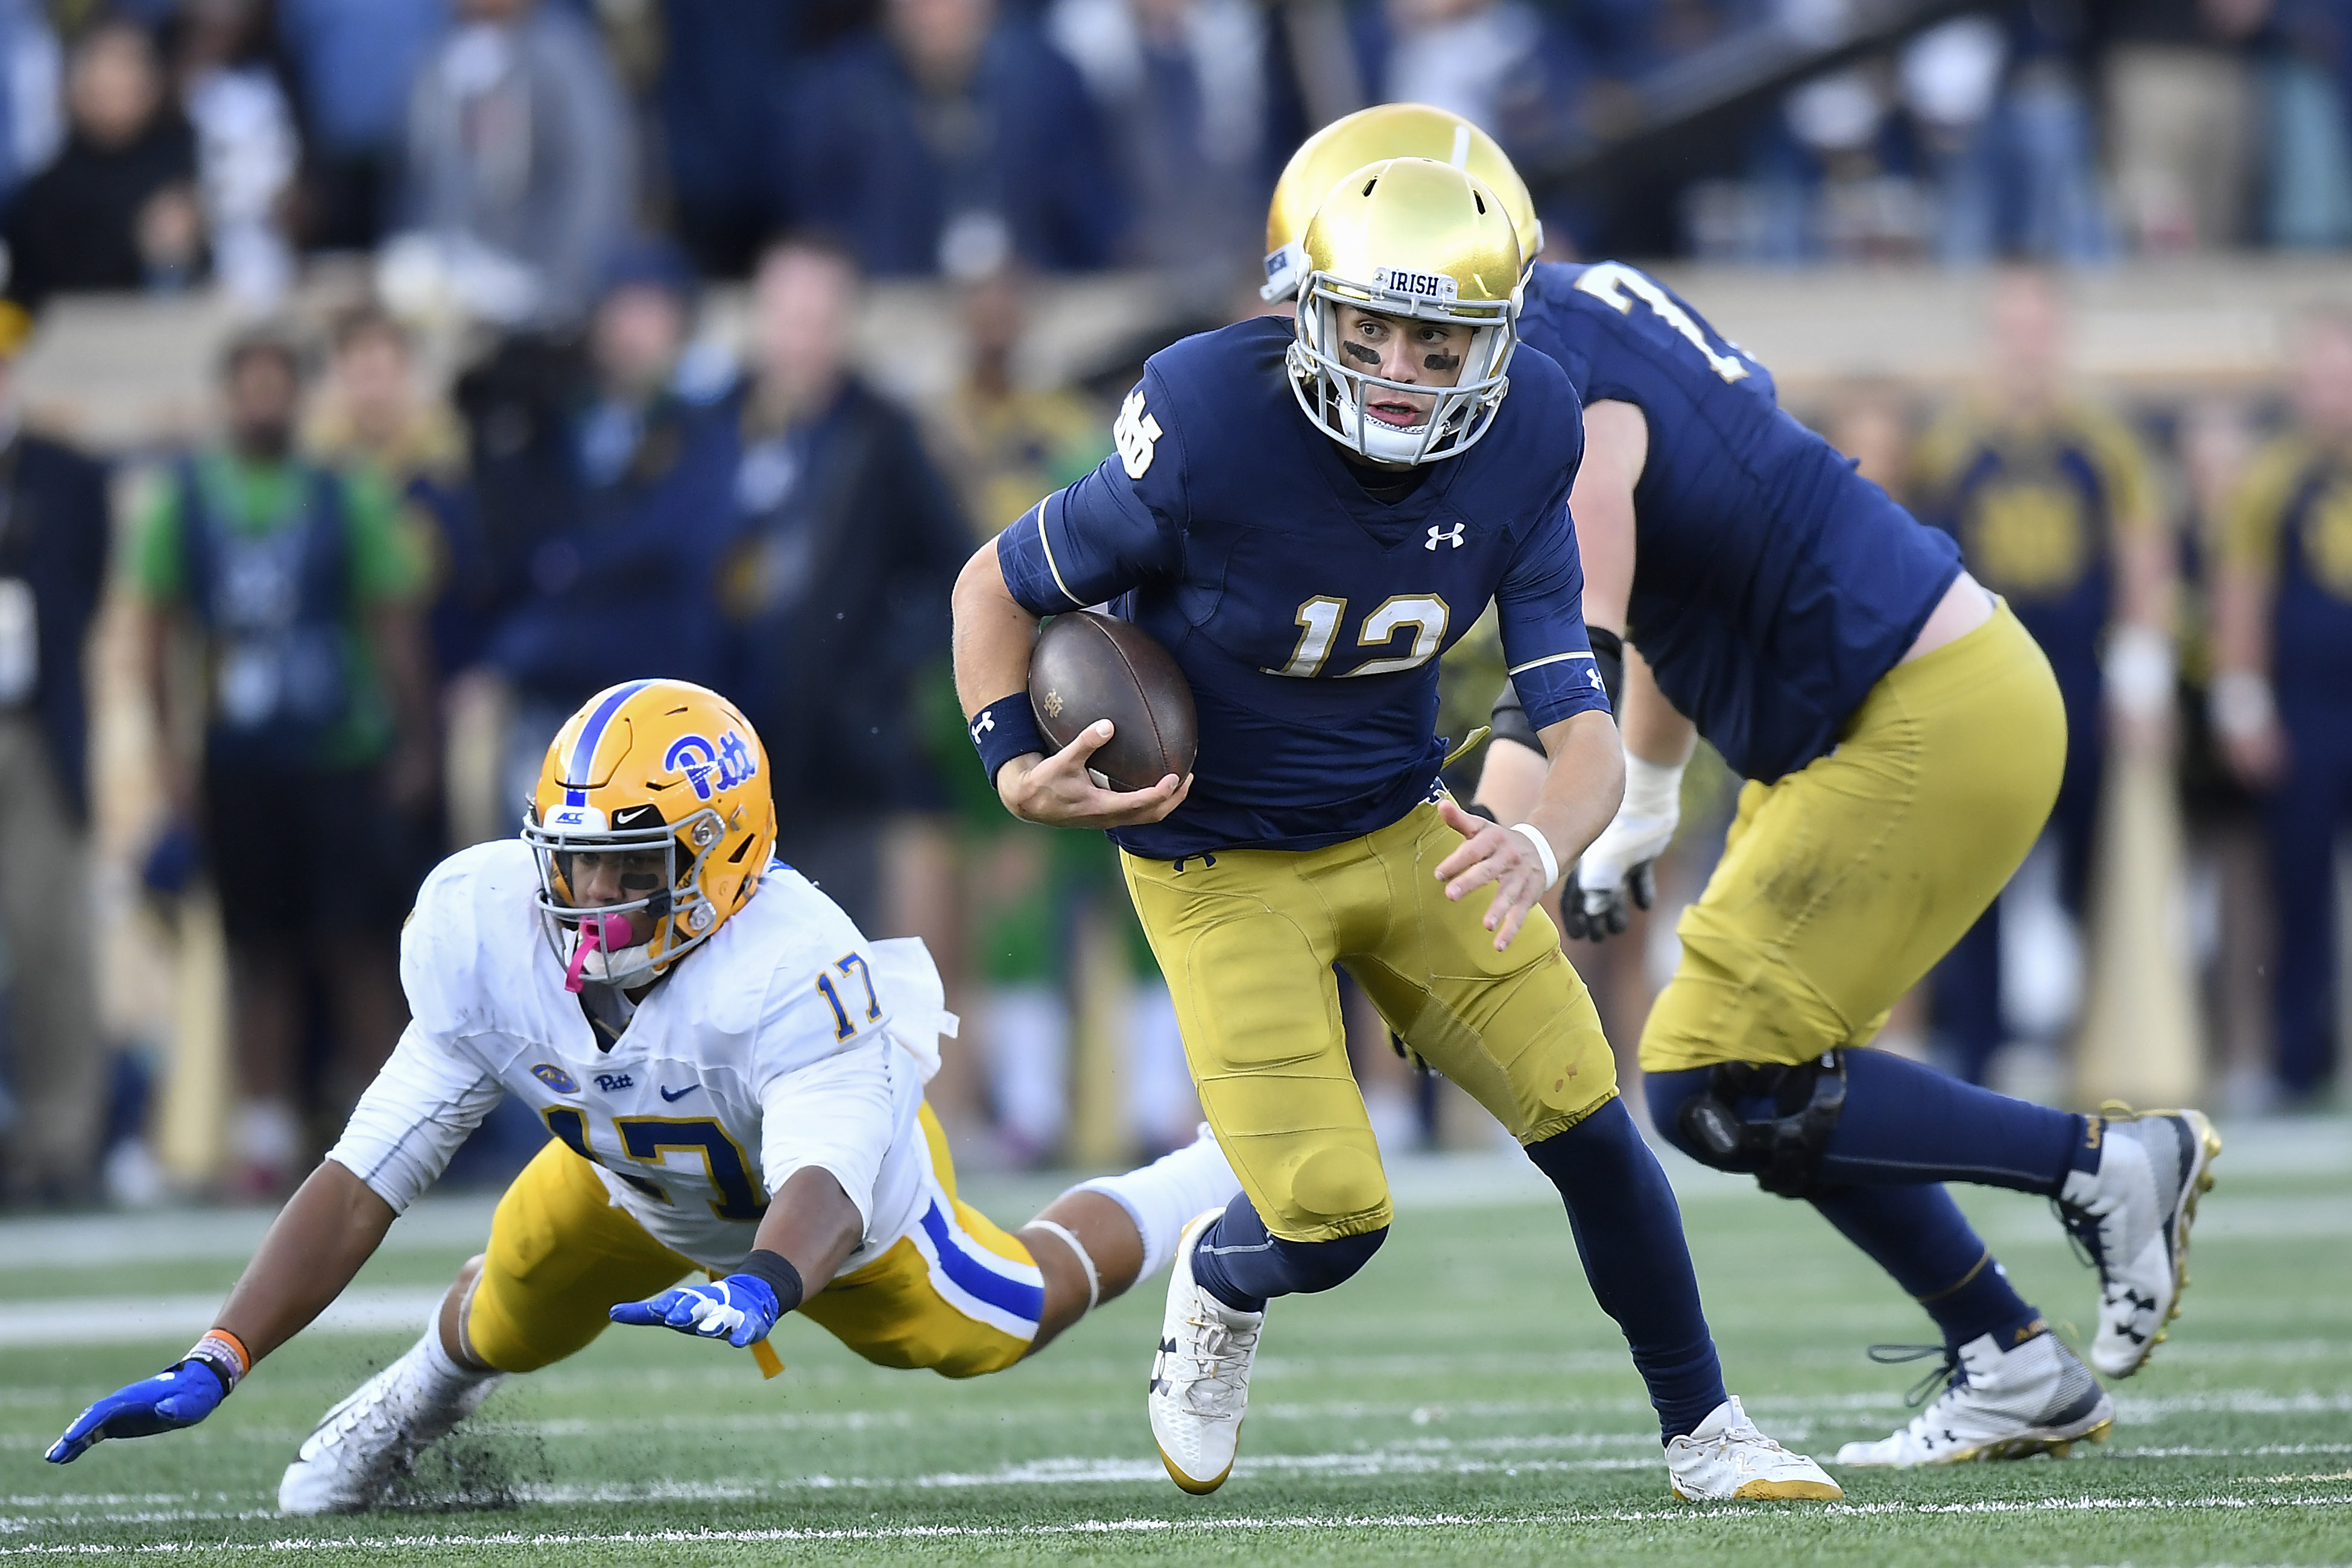 Ian Book #12 of the Notre Dame Fighting Irish scramble to avoid the tackle from Rashad Weaver #17 of the Pittsburgh Panthers in the second half at Notre Dame Stadium on October 13, 2018 in South Bend, Indiana.